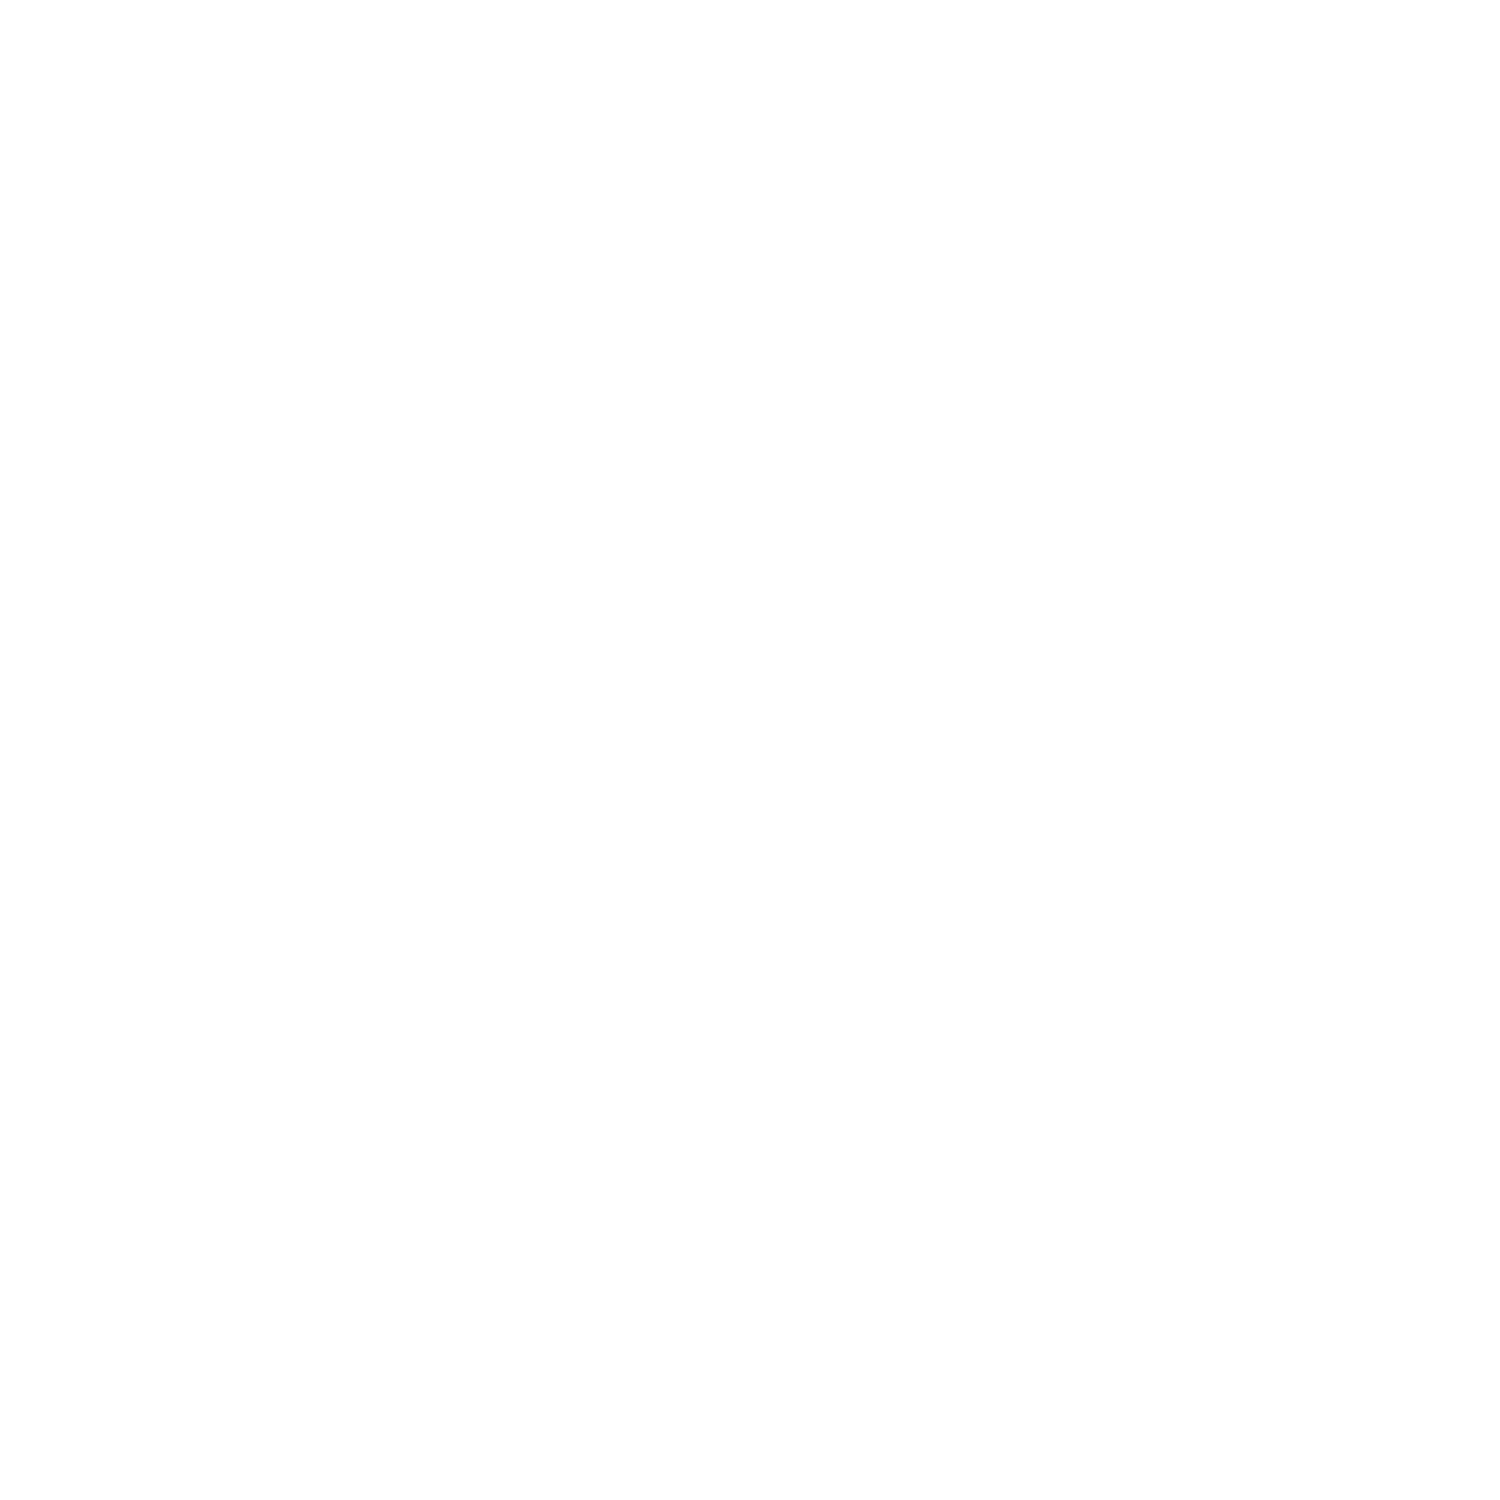 HLG Photography